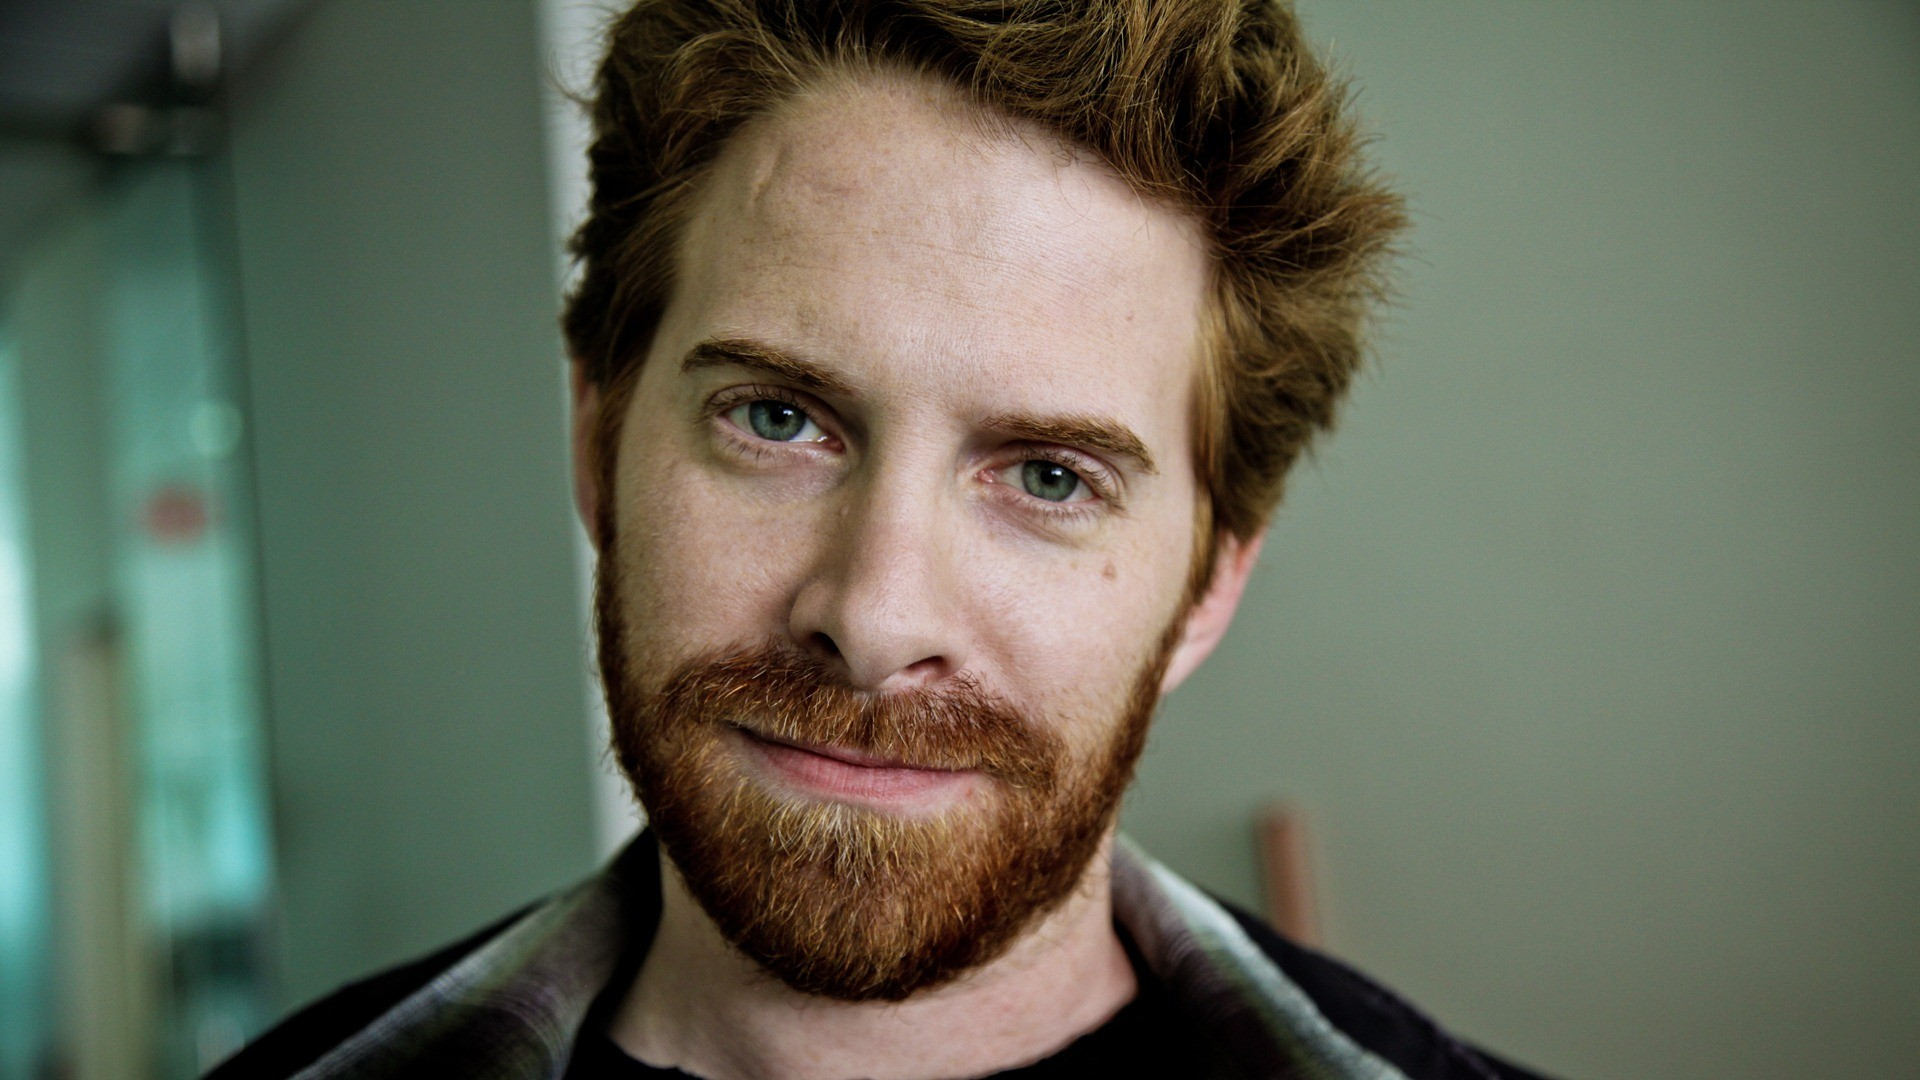 Seth Green Wallpapers, Pictures, Images